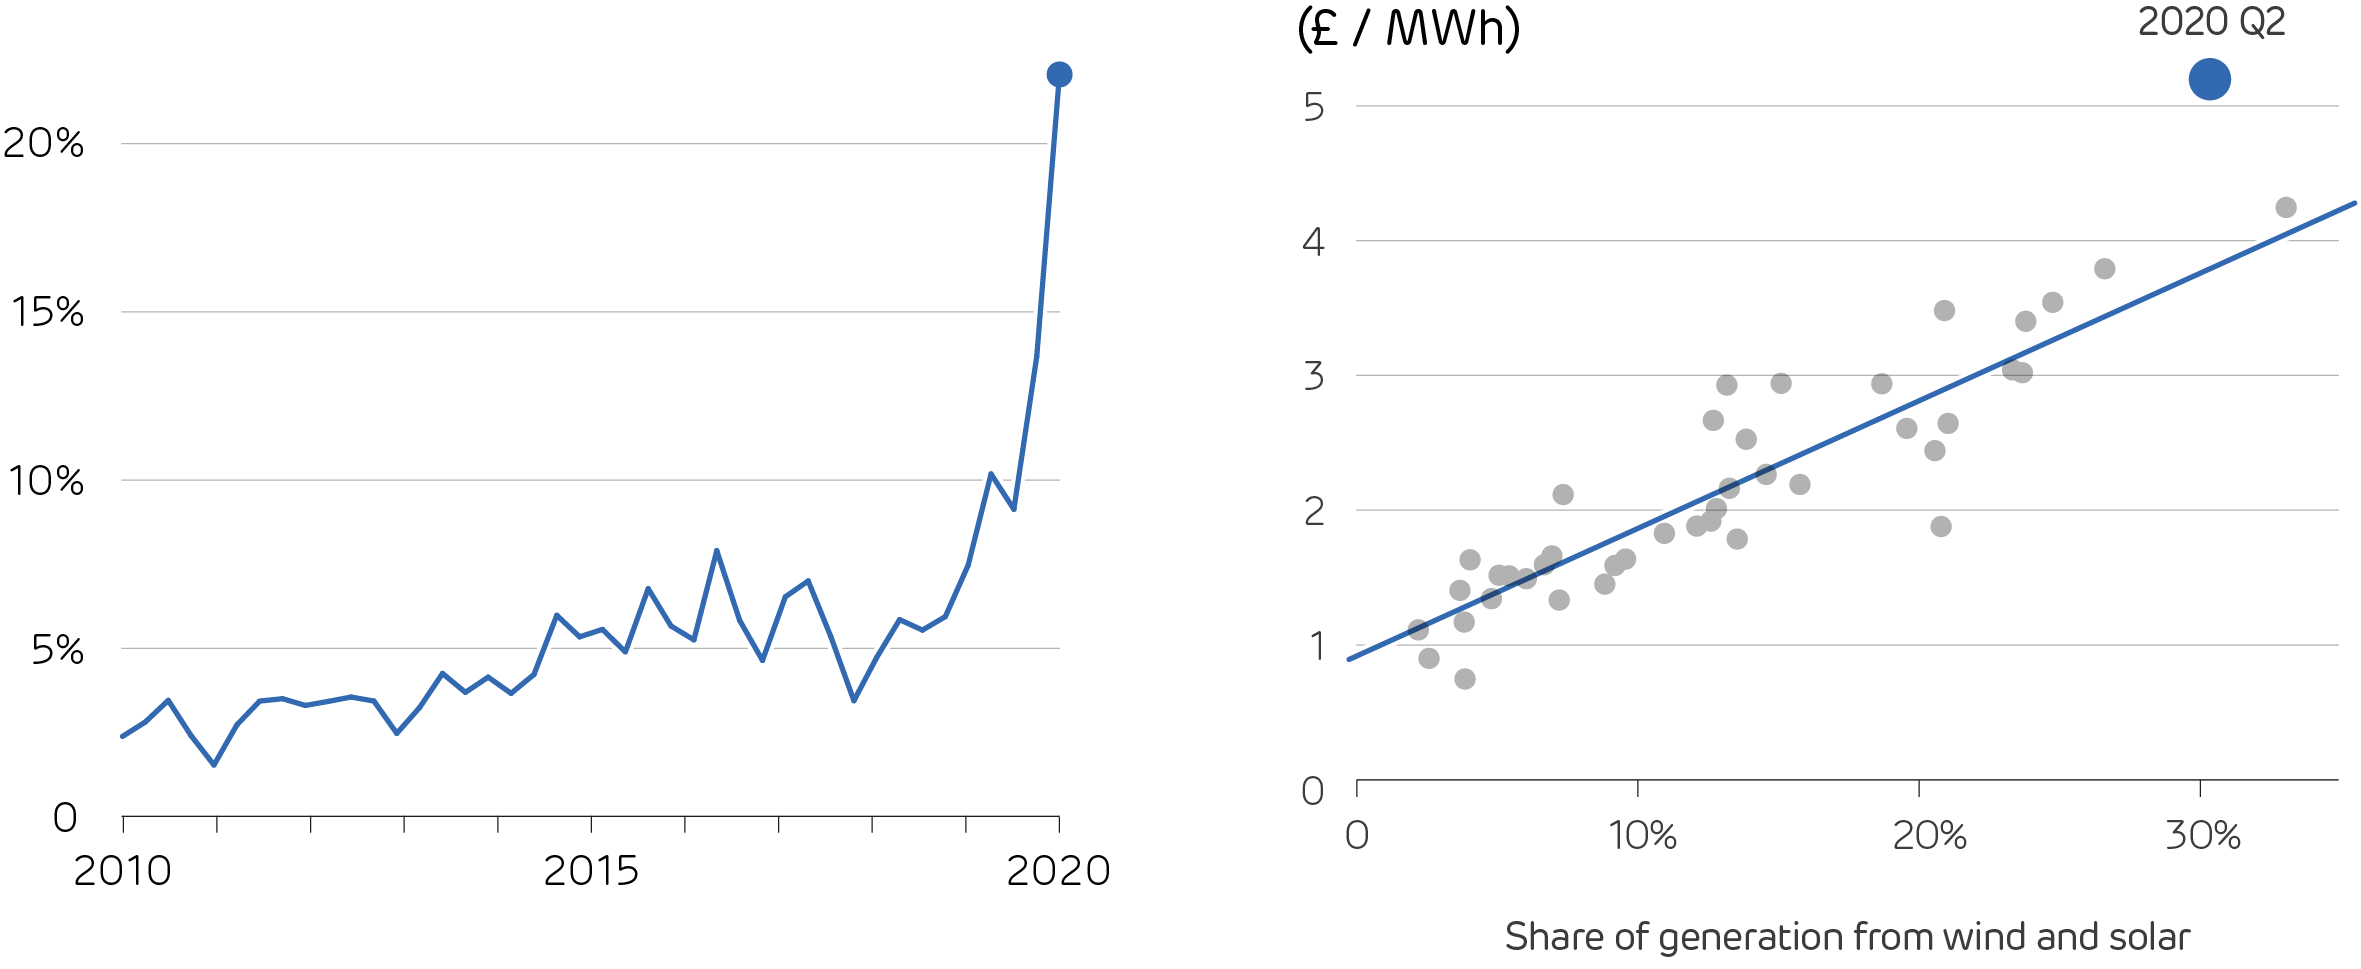 Monthly average power prices over the last two decades, adjusted for inflation (presented in 2020 GBP) (left)  Balancing price shown against share of variable renewables, with dots showing the average over each quarter since 2010 (right)